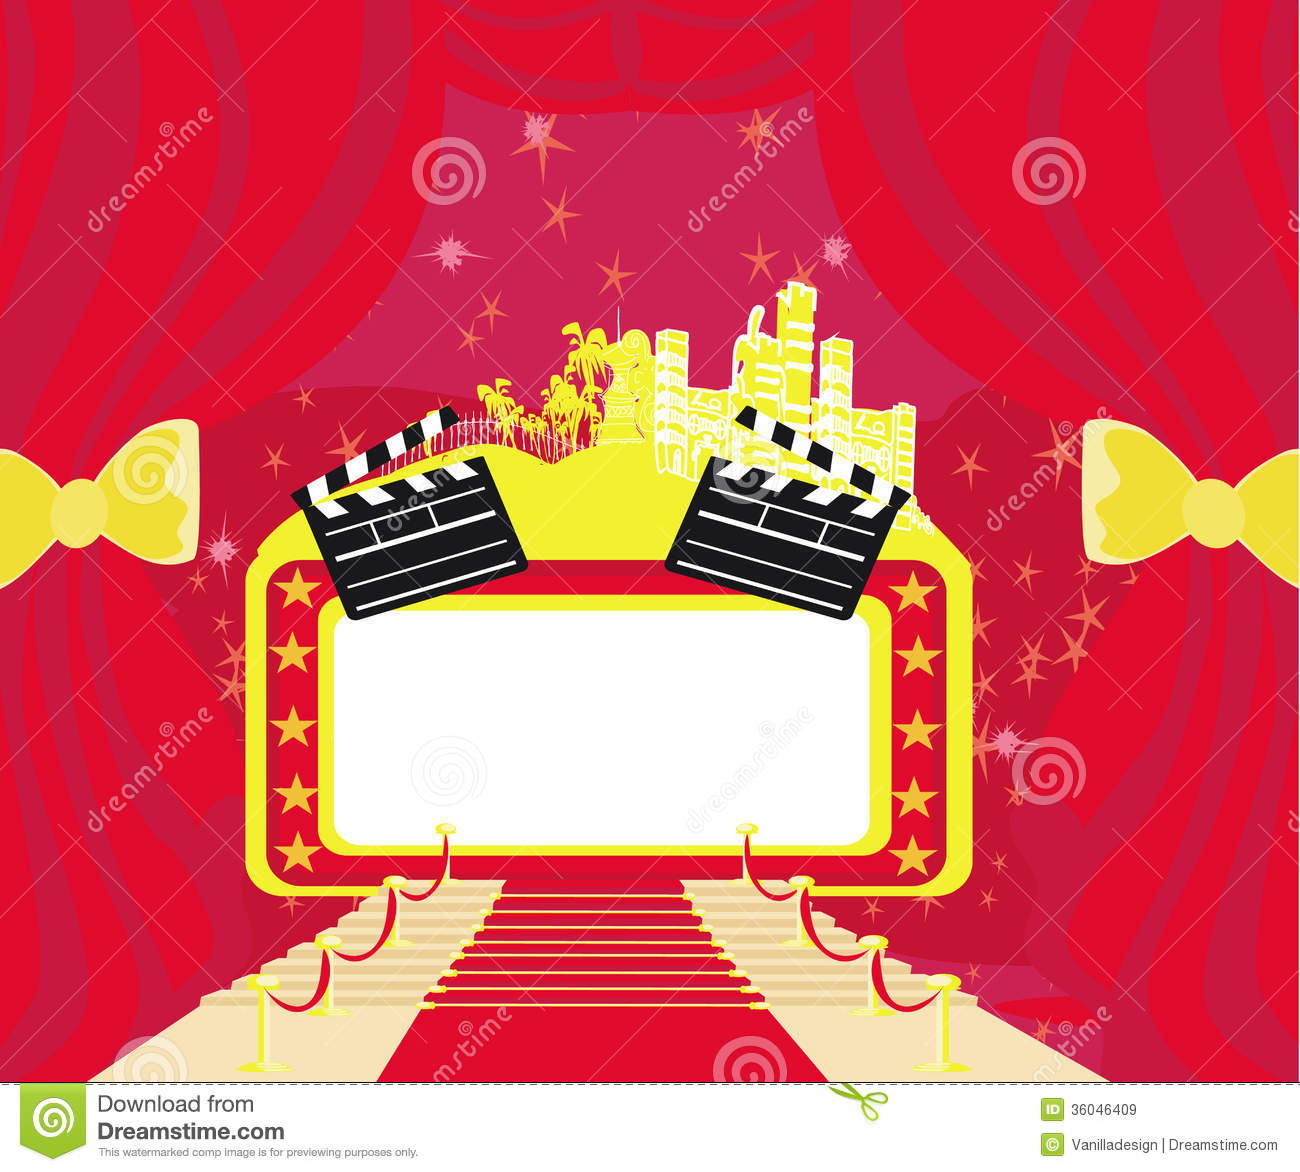 Red Carpet Hollywood Premier Abstract Card Royalty Free